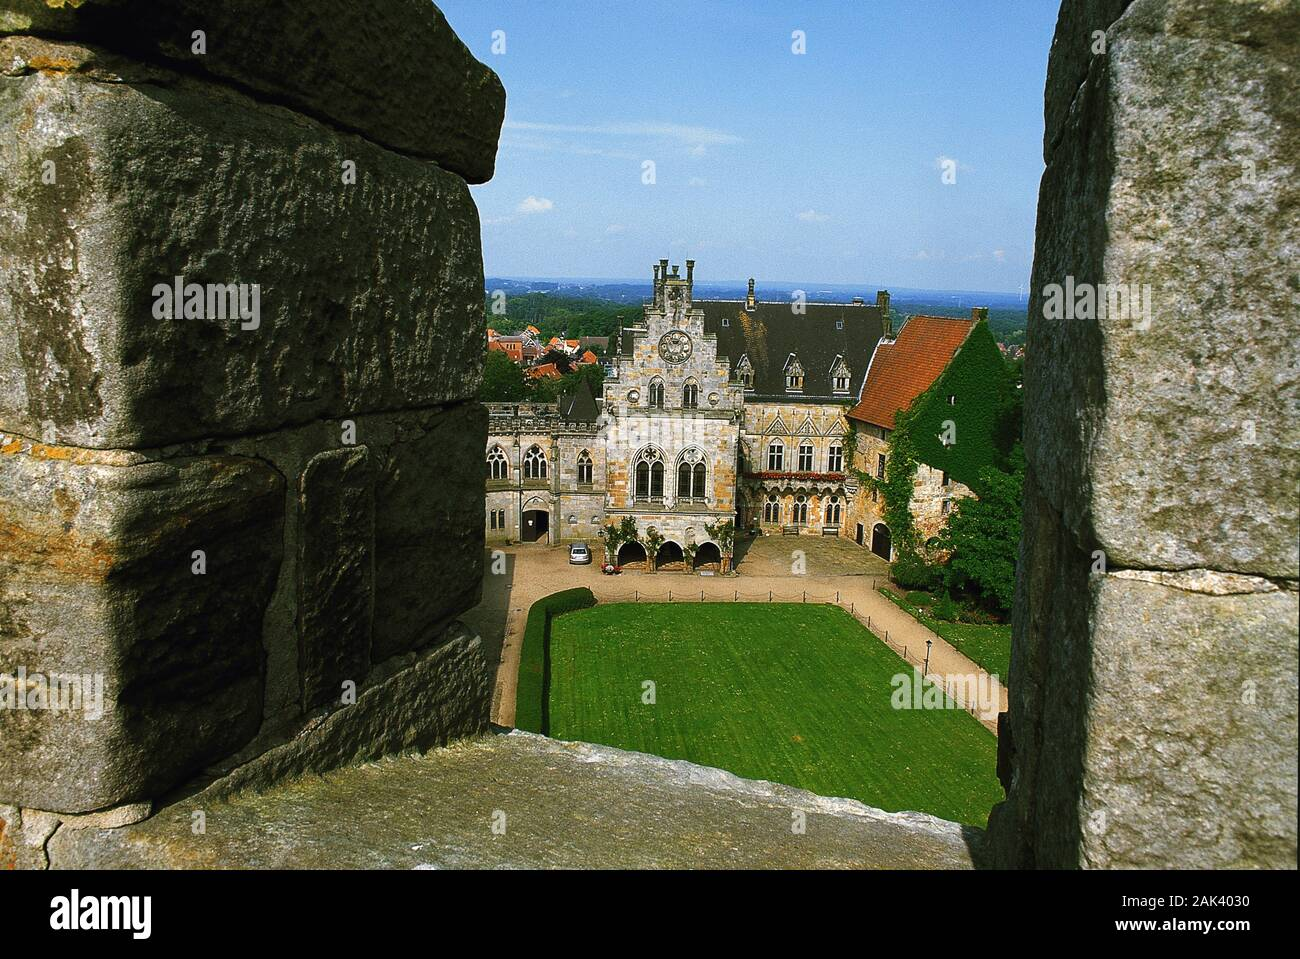 From a defenestration one has a great view to the inner ward of Bentheim Castle in Bad Bentheim in the Münsterland Region. Already in the 11th century Stock Photo